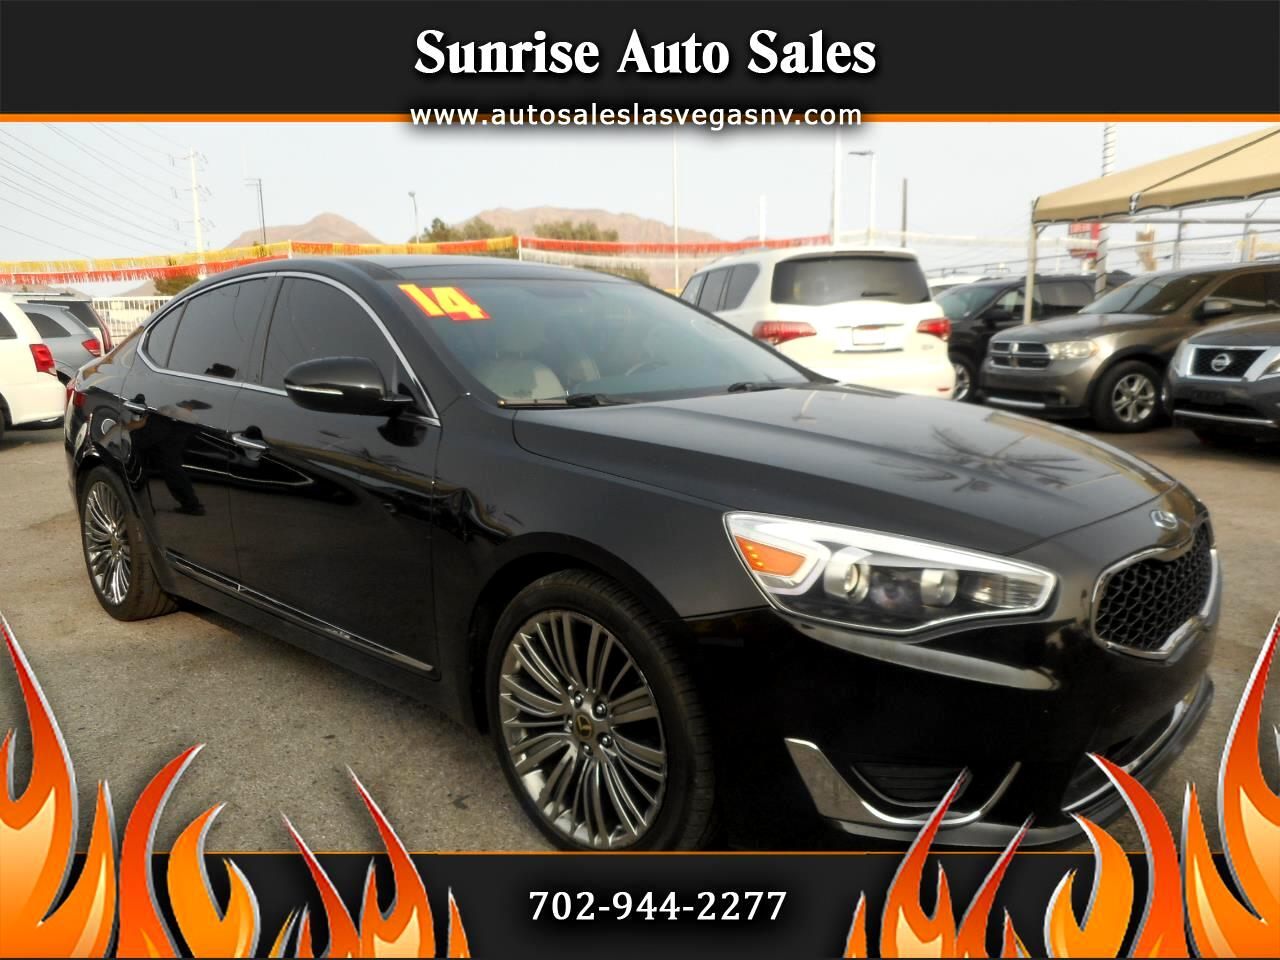 used cars for sale las vegas nv 89110 sunrise auto sales vegas nv 89110 sunrise auto sales